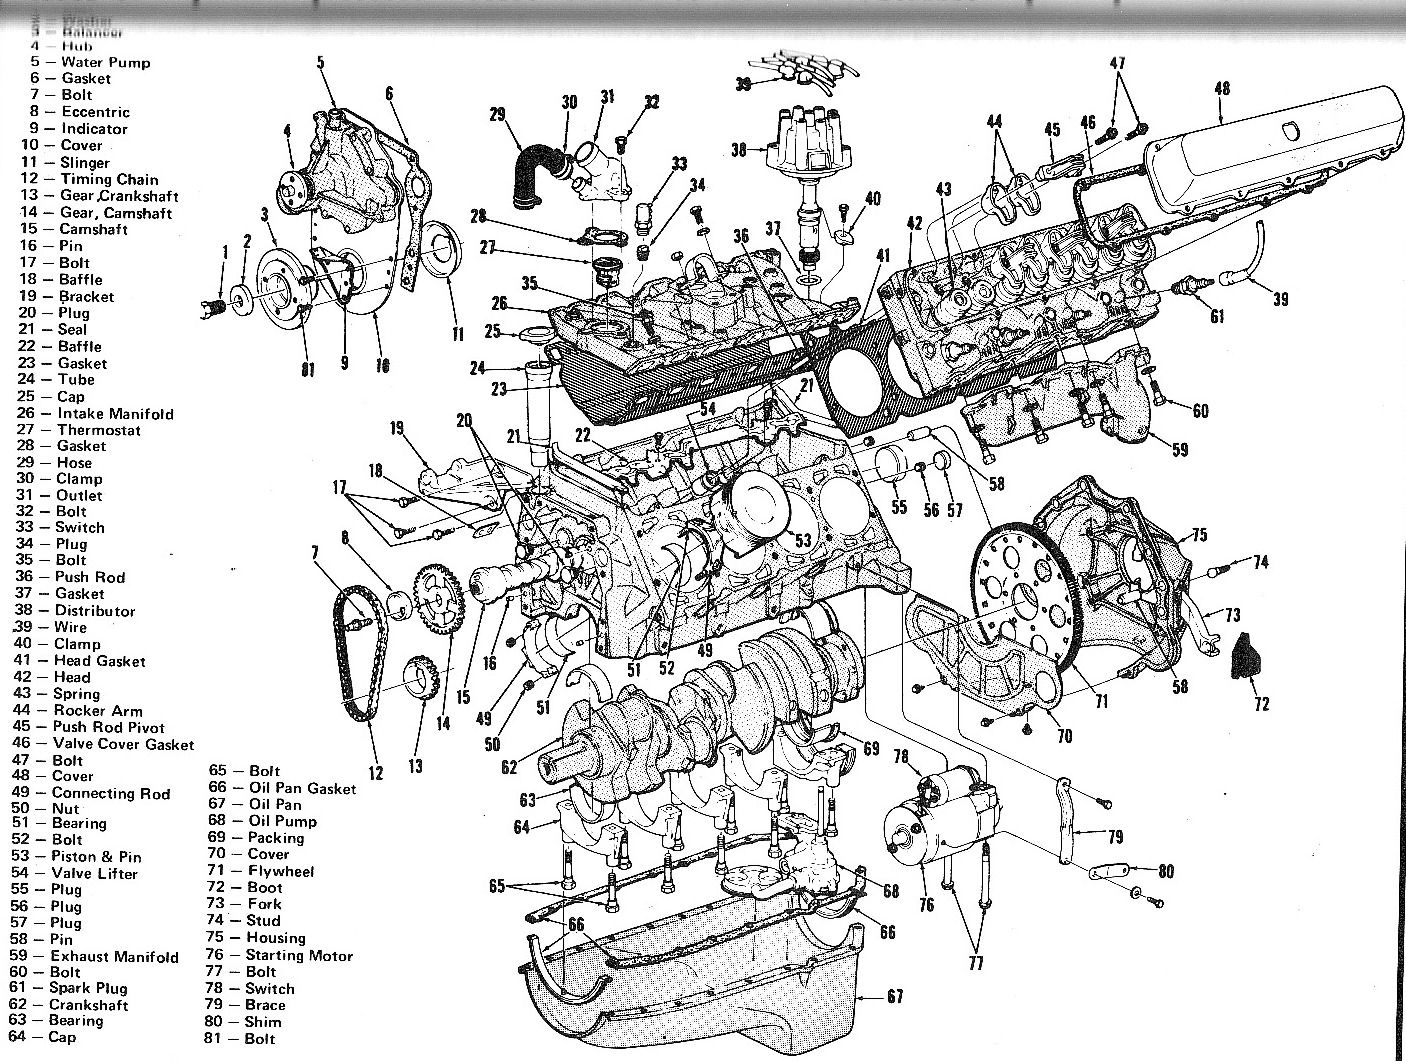 2001 Mustang Parts Diagram Wiring Creator Engine Everything About